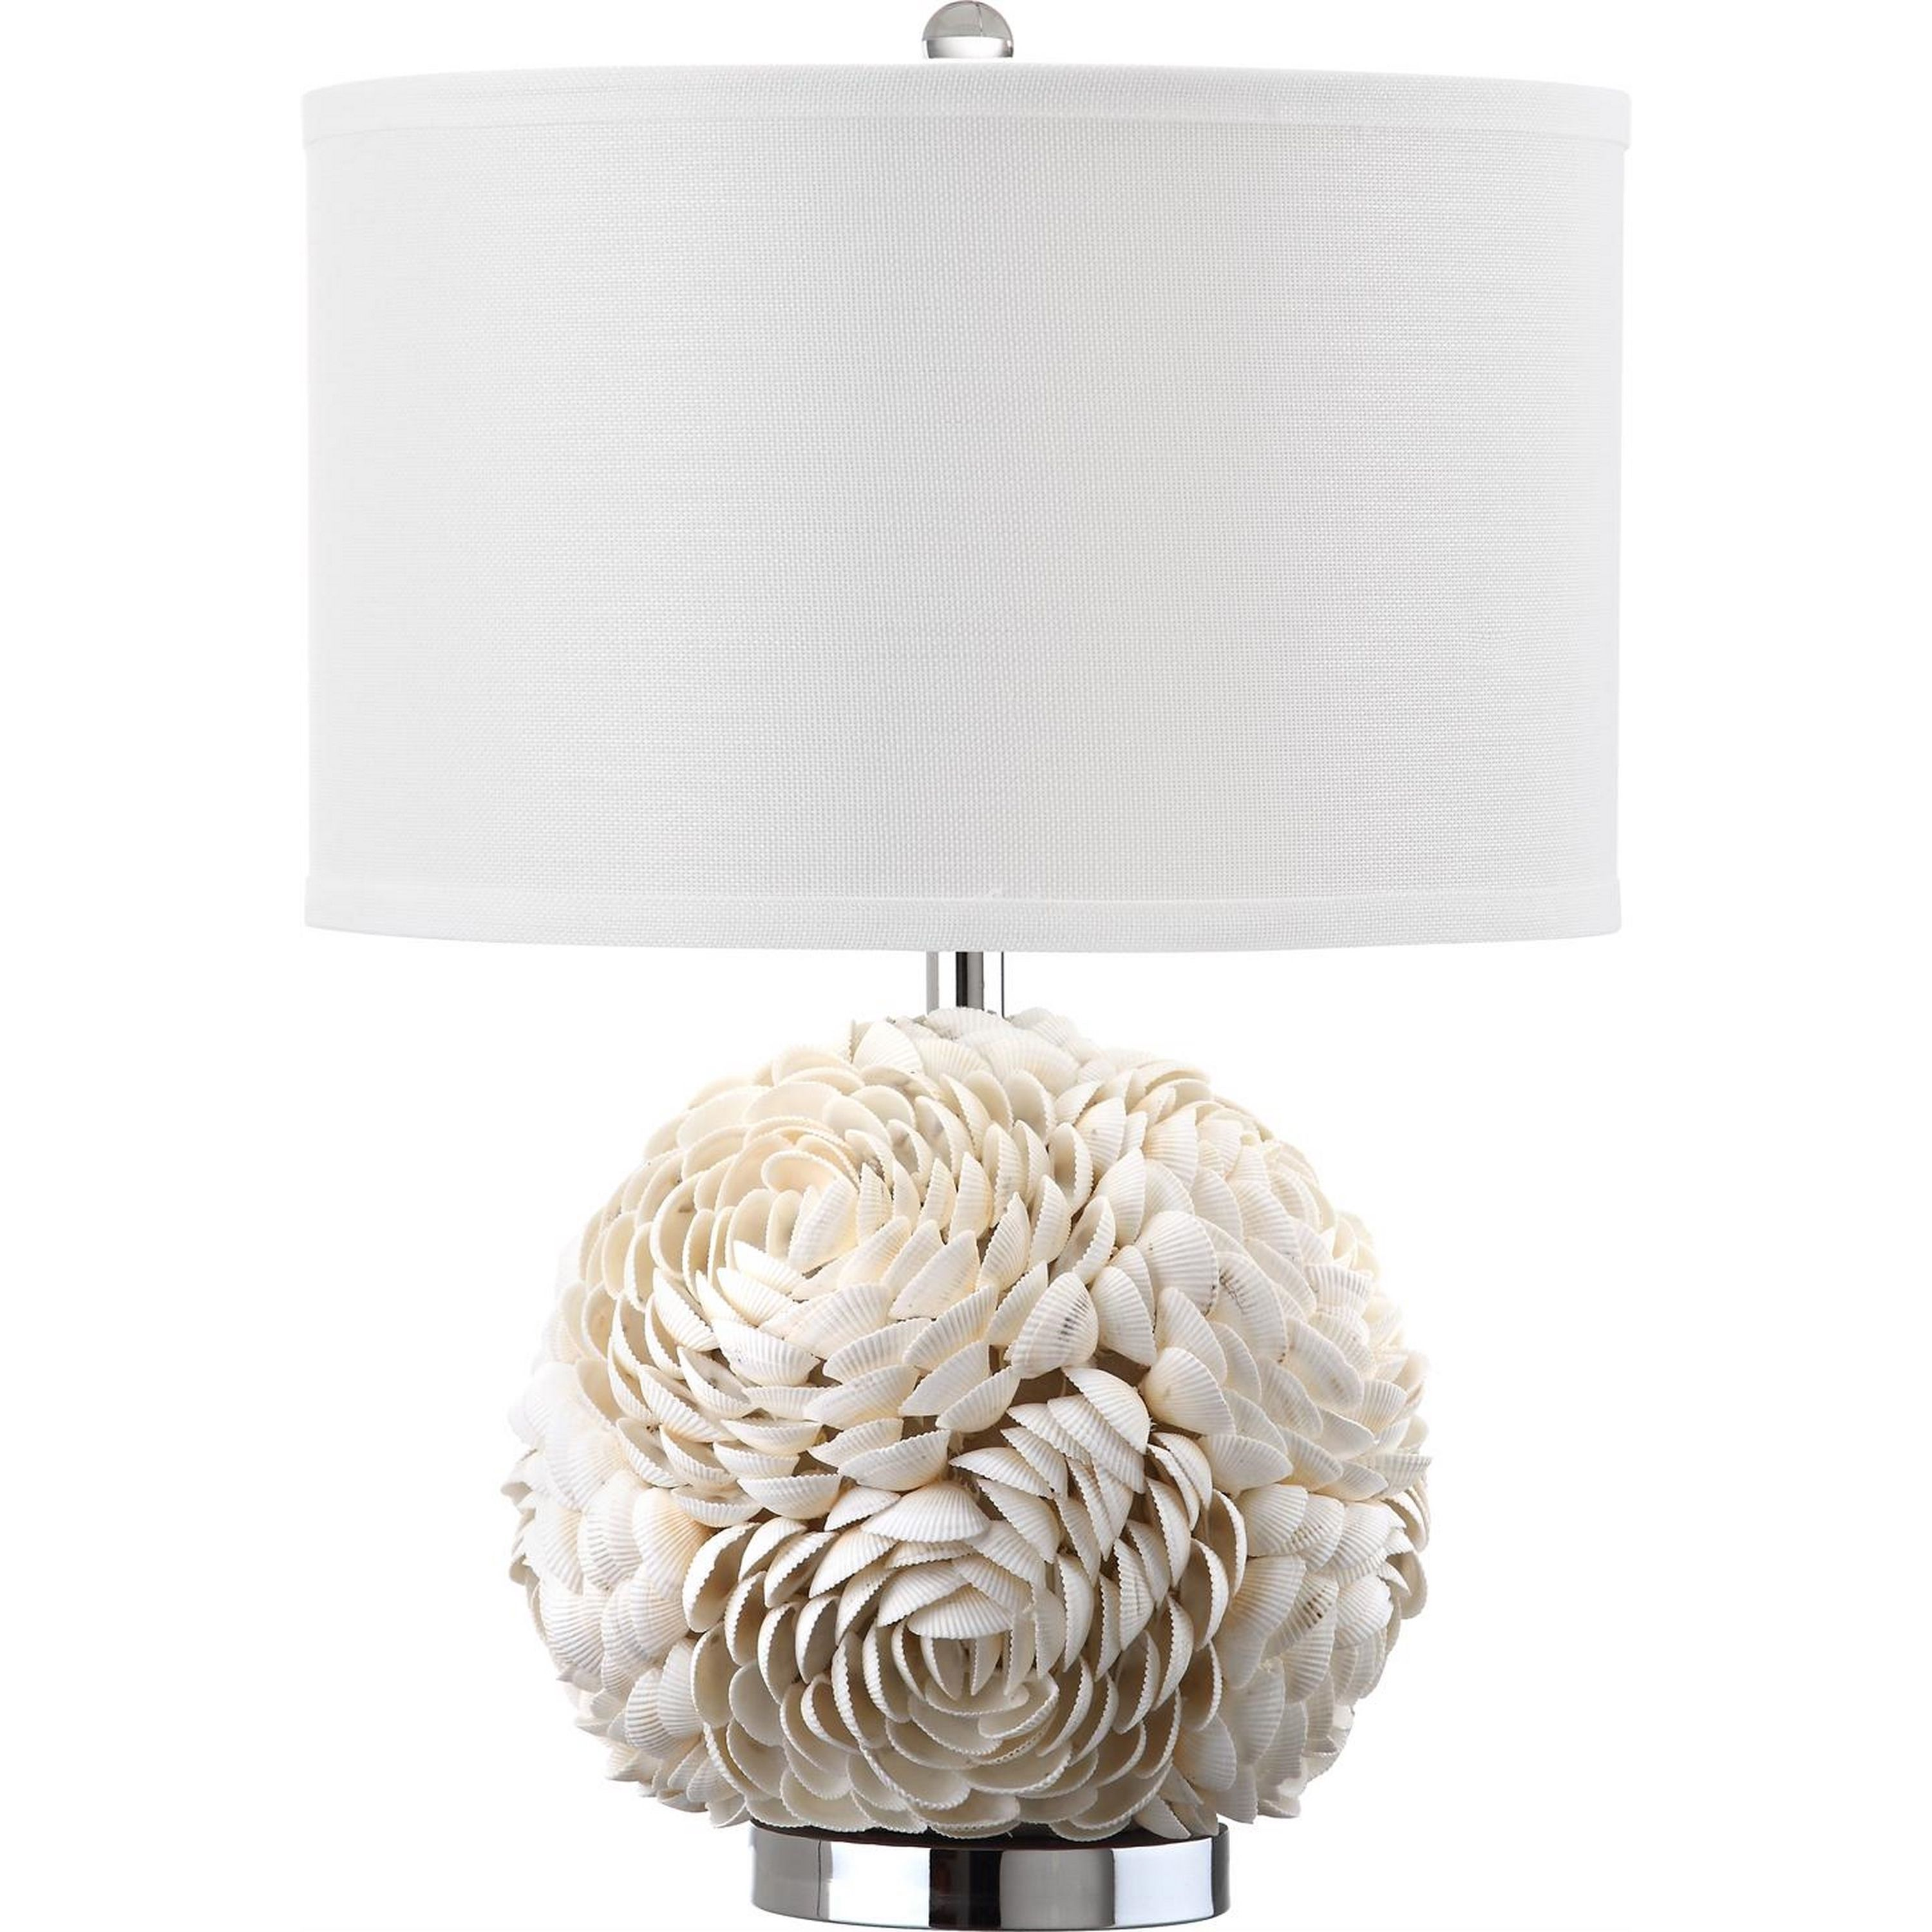 Online Shopping Bedding Furniture Electronics Jewelry Clothing More With Images White Table Lamp Table Lamp Design Table Lamp